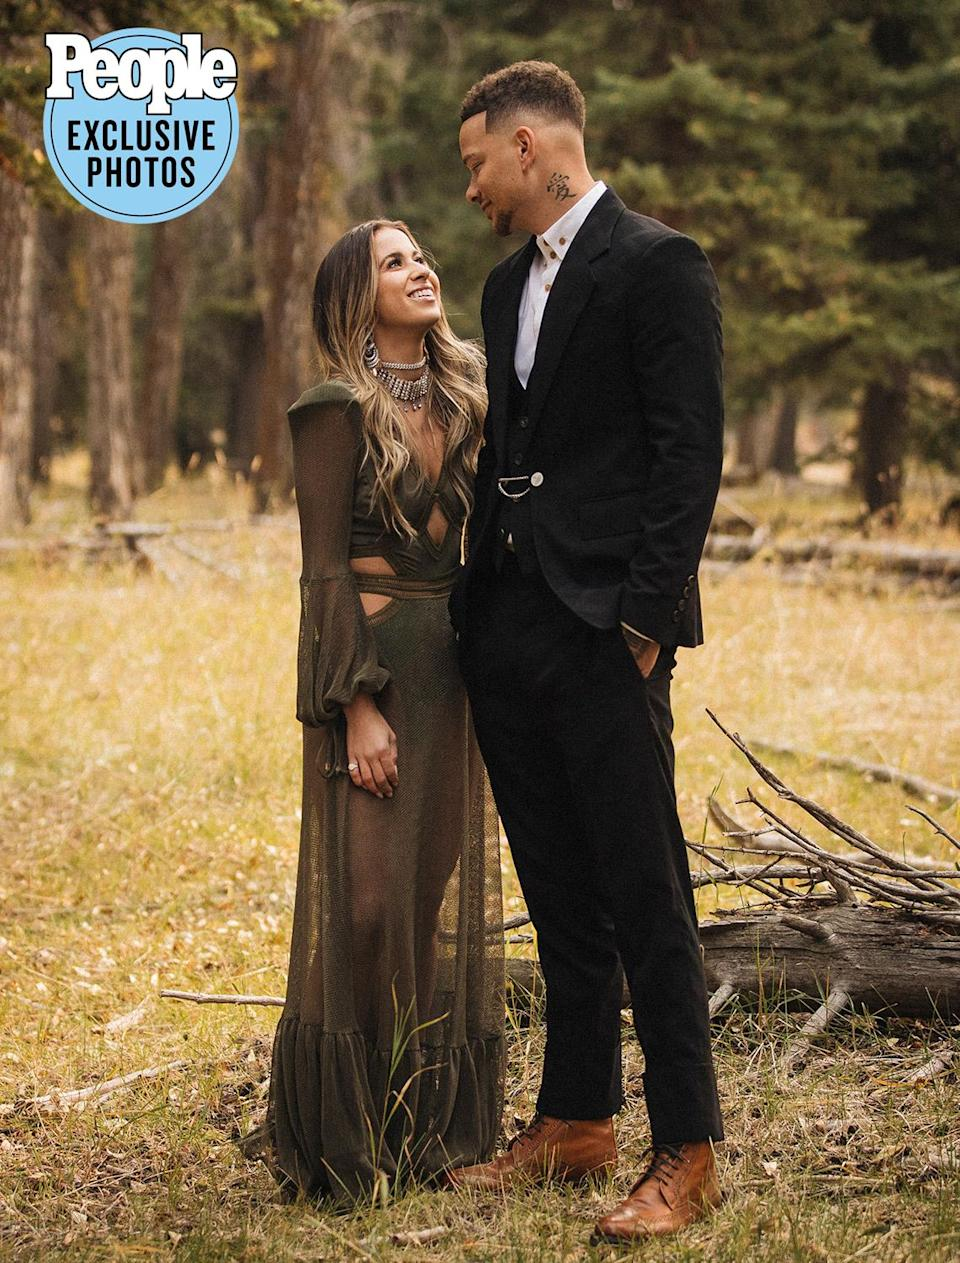 "<p>The country couple celebrated <a href=""https://people.com/country/kane-brown-marries-katelyn-jae-wedding-photo/"" rel=""nofollow noopener"" target=""_blank"" data-ylk=""slk:their second wedding anniversary"" class=""link rapid-noclick-resp"">their second wedding anniversary</a> earlier this month. </p>"